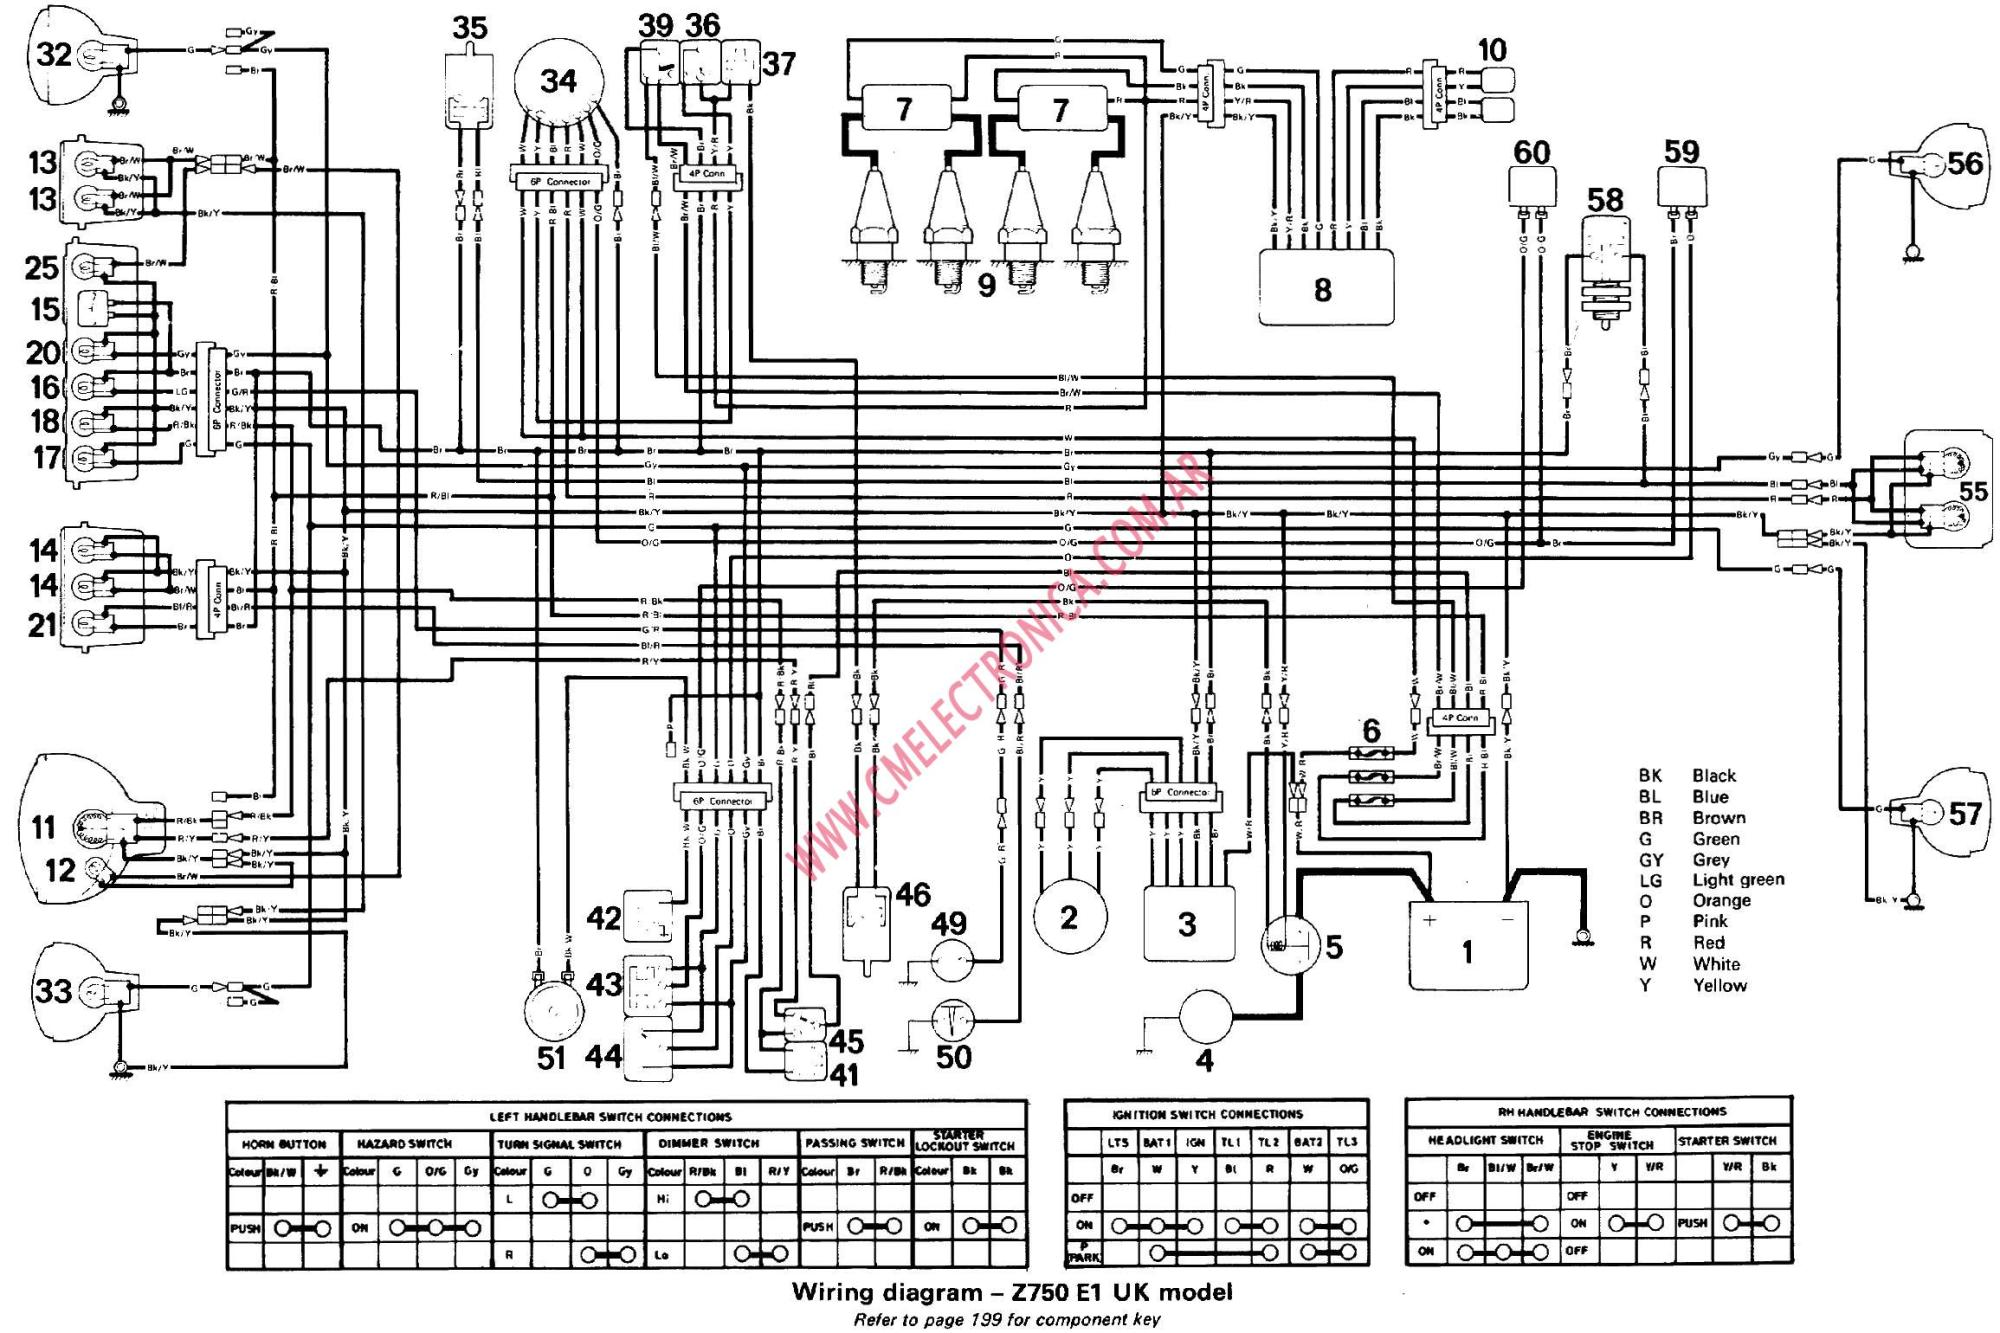 hight resolution of 1999 yamaha warrior 350 wiring diagram images gallery